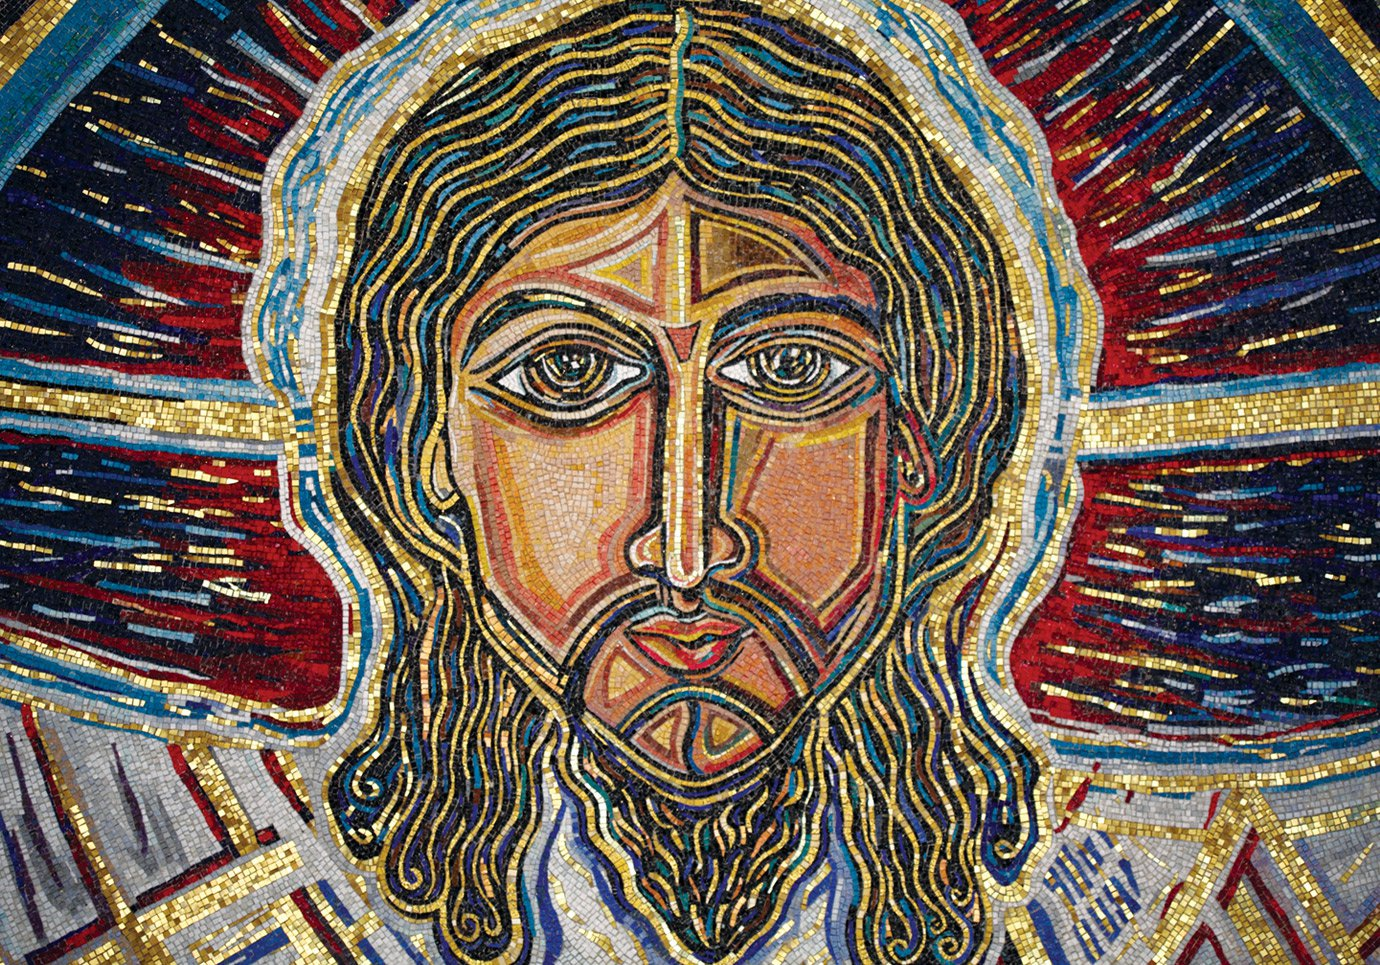 Mosaic of the Face of the Transfigured Christ, Church of the Transfiguration, Orleans, Massachusetts